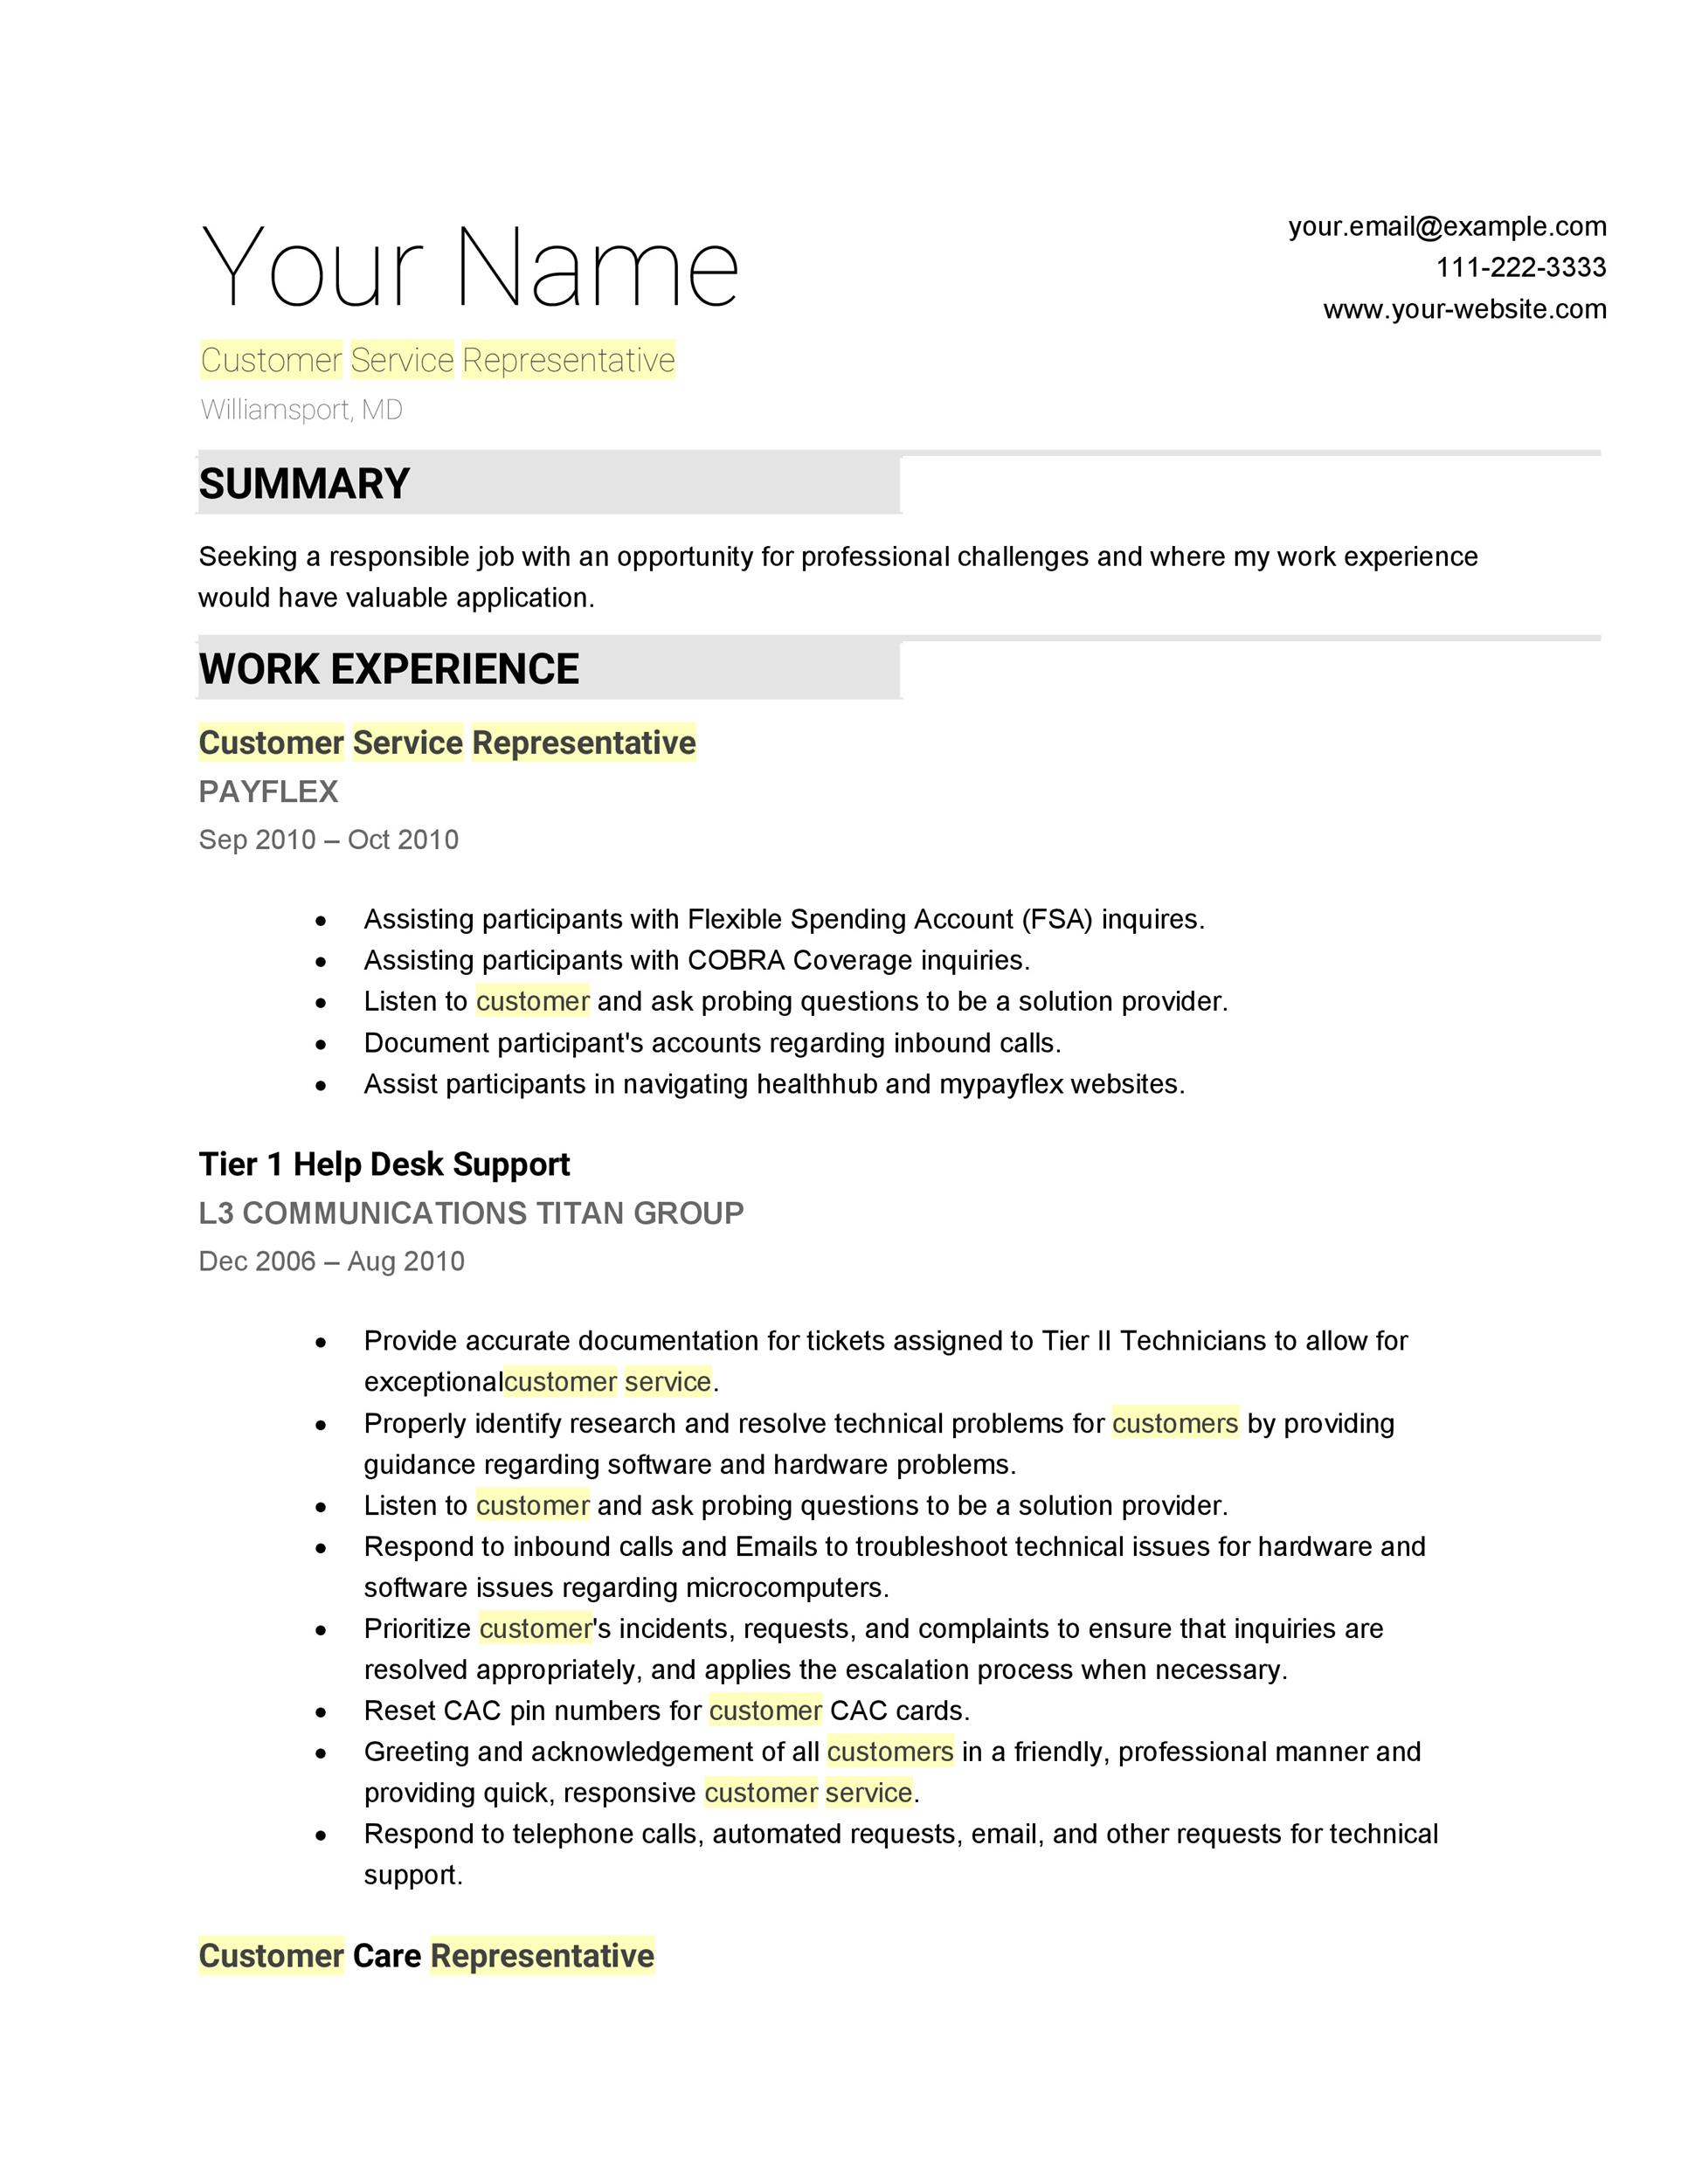 Customer Service Resume Examples Template Lab - Free customer service resume templates